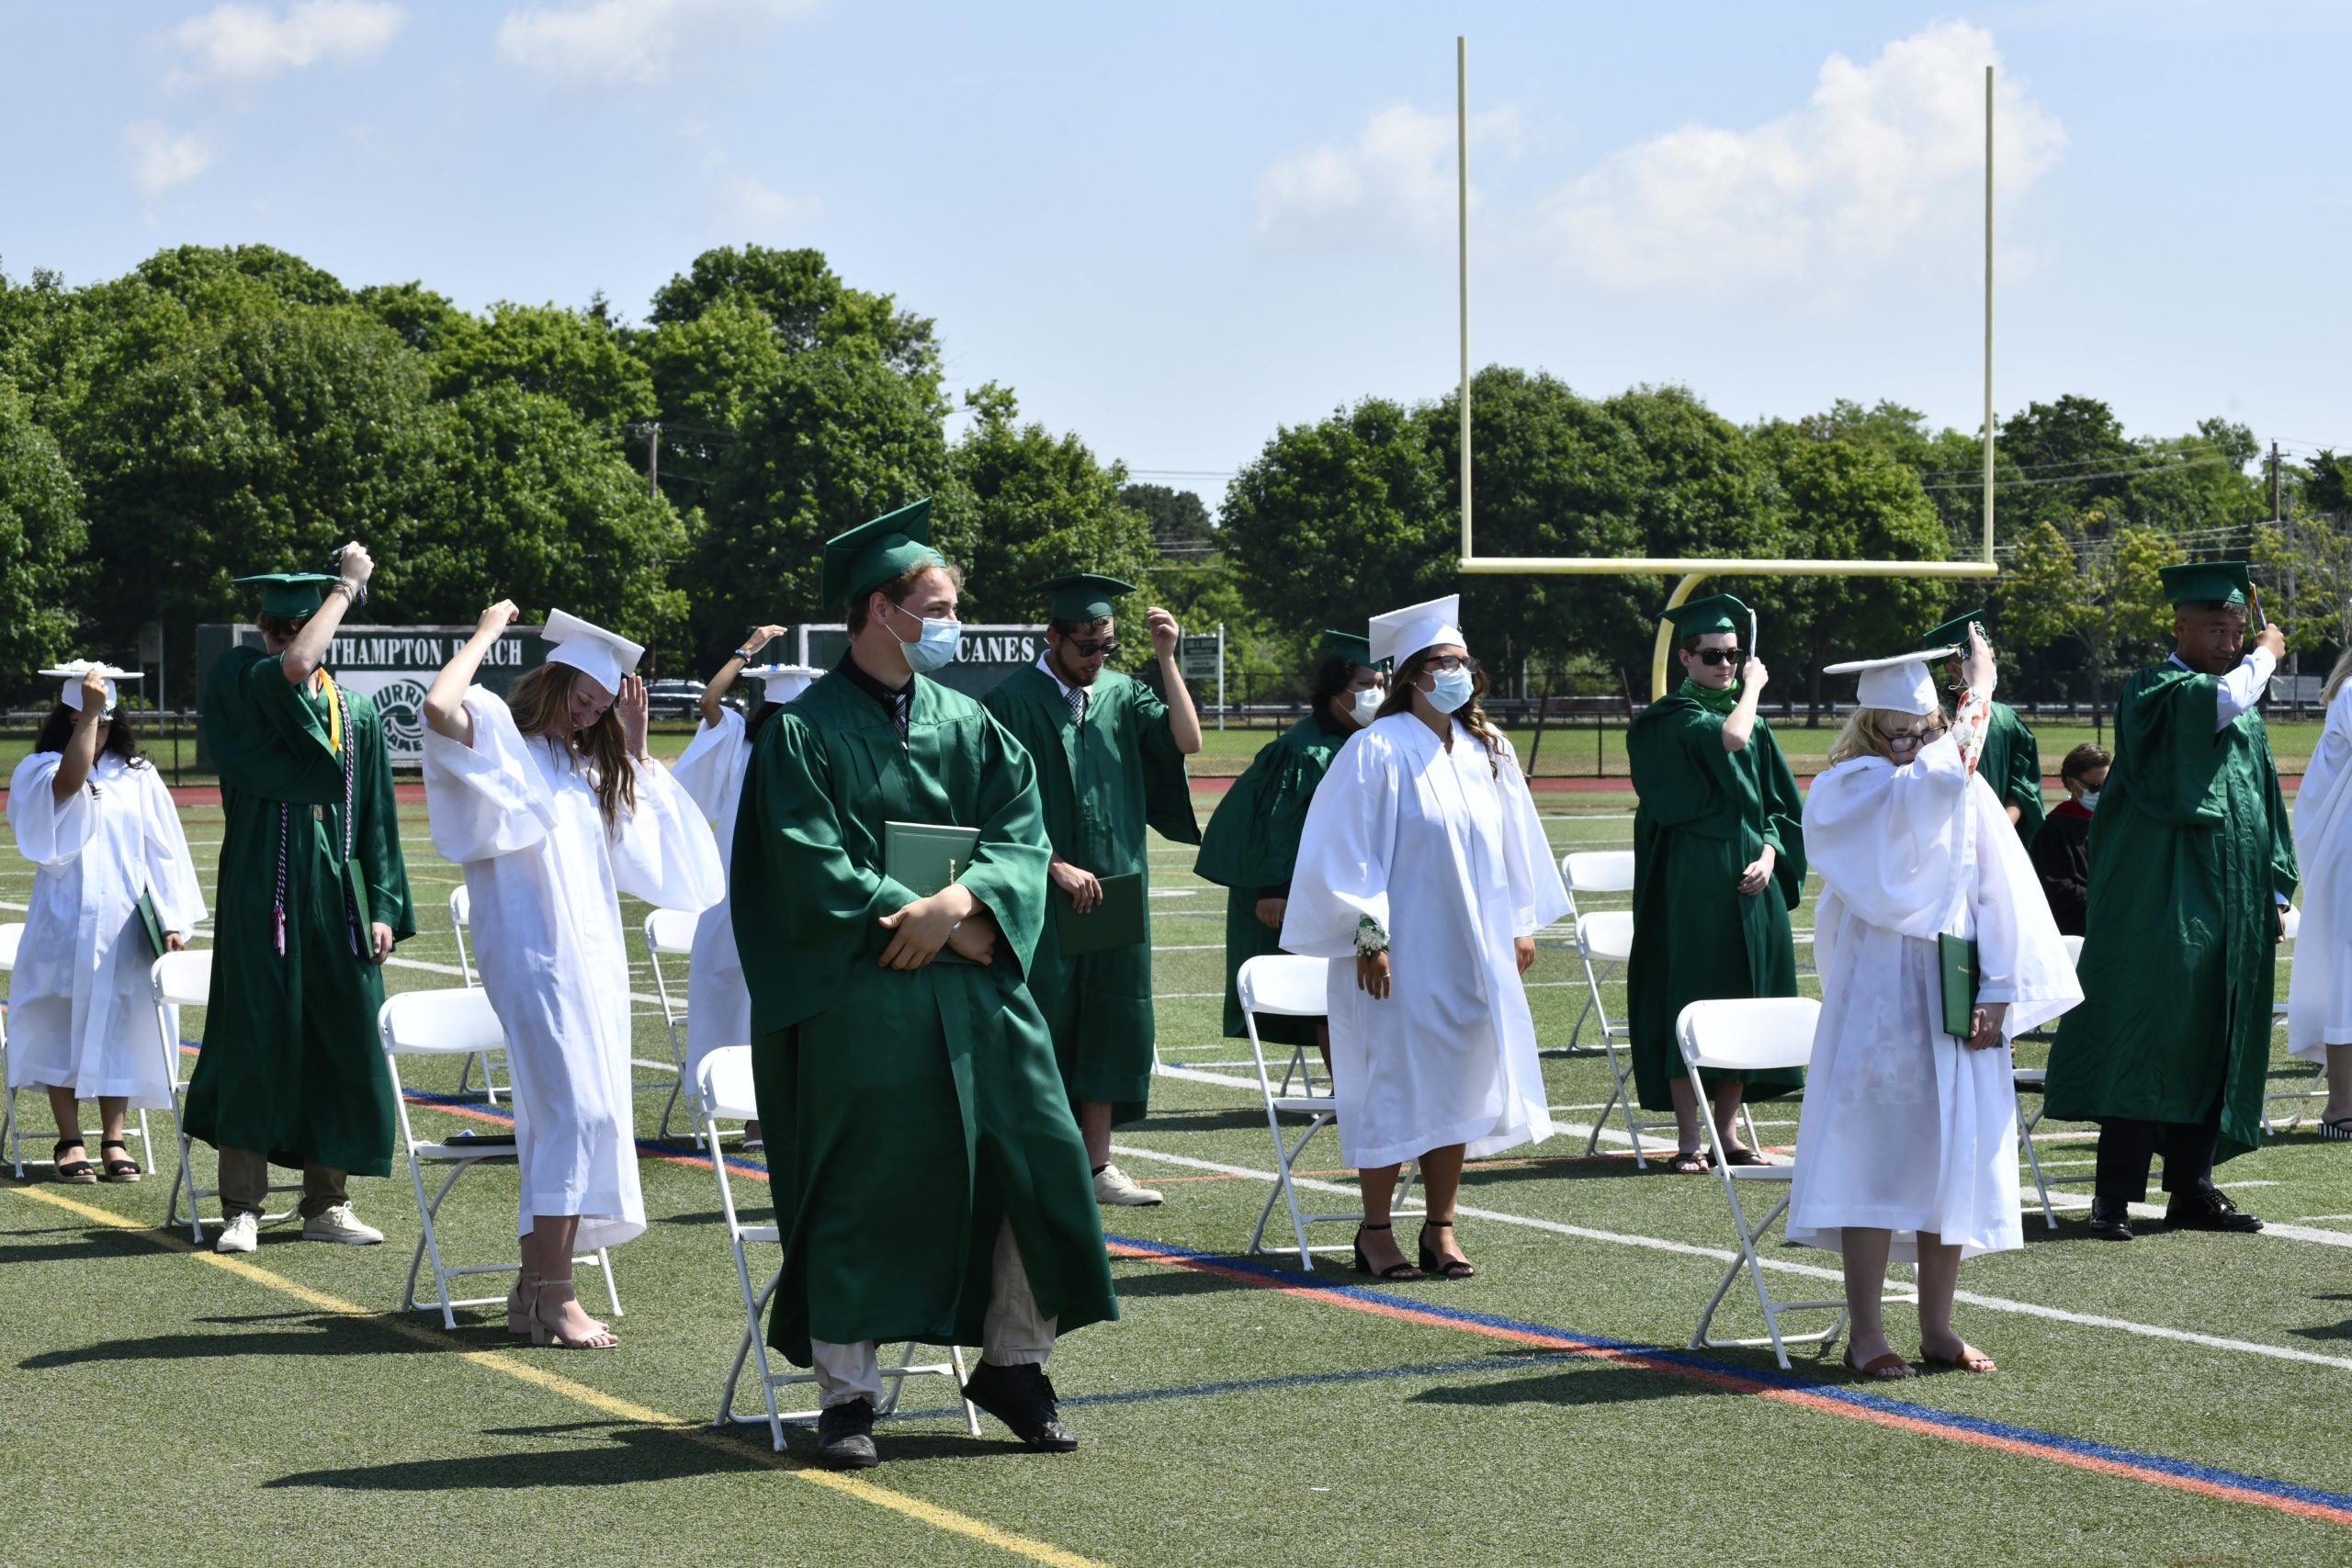 Westhampton Beach High School hosted its 112th commencement on Friday.